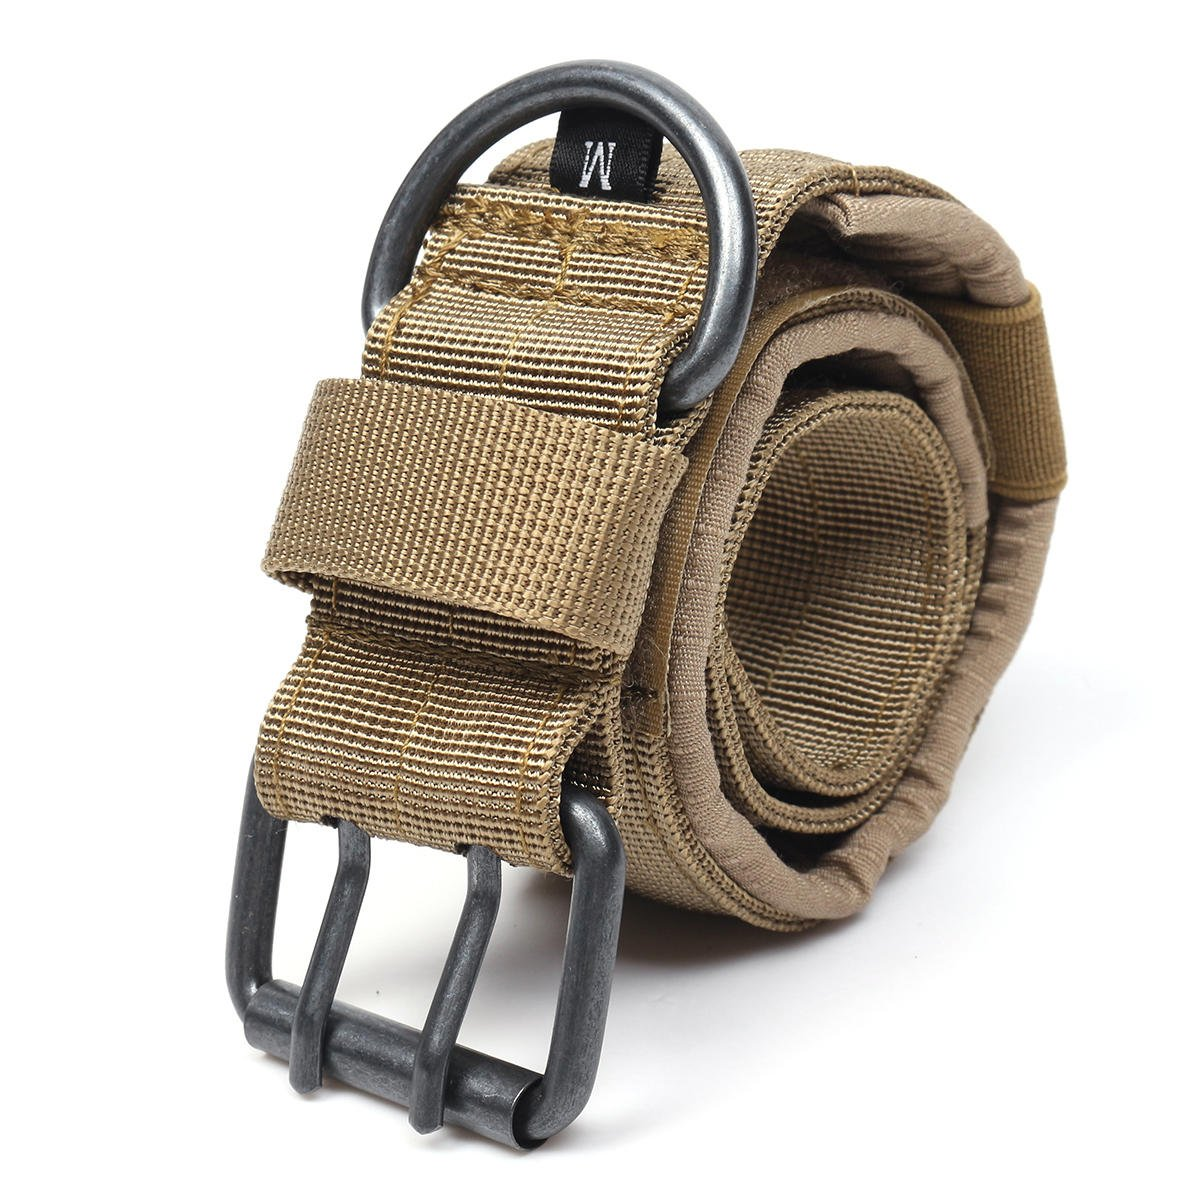 Nylon Tactical Dog Collar Adjustable Training Dog Collar with Metal D Ring Buckle M Size